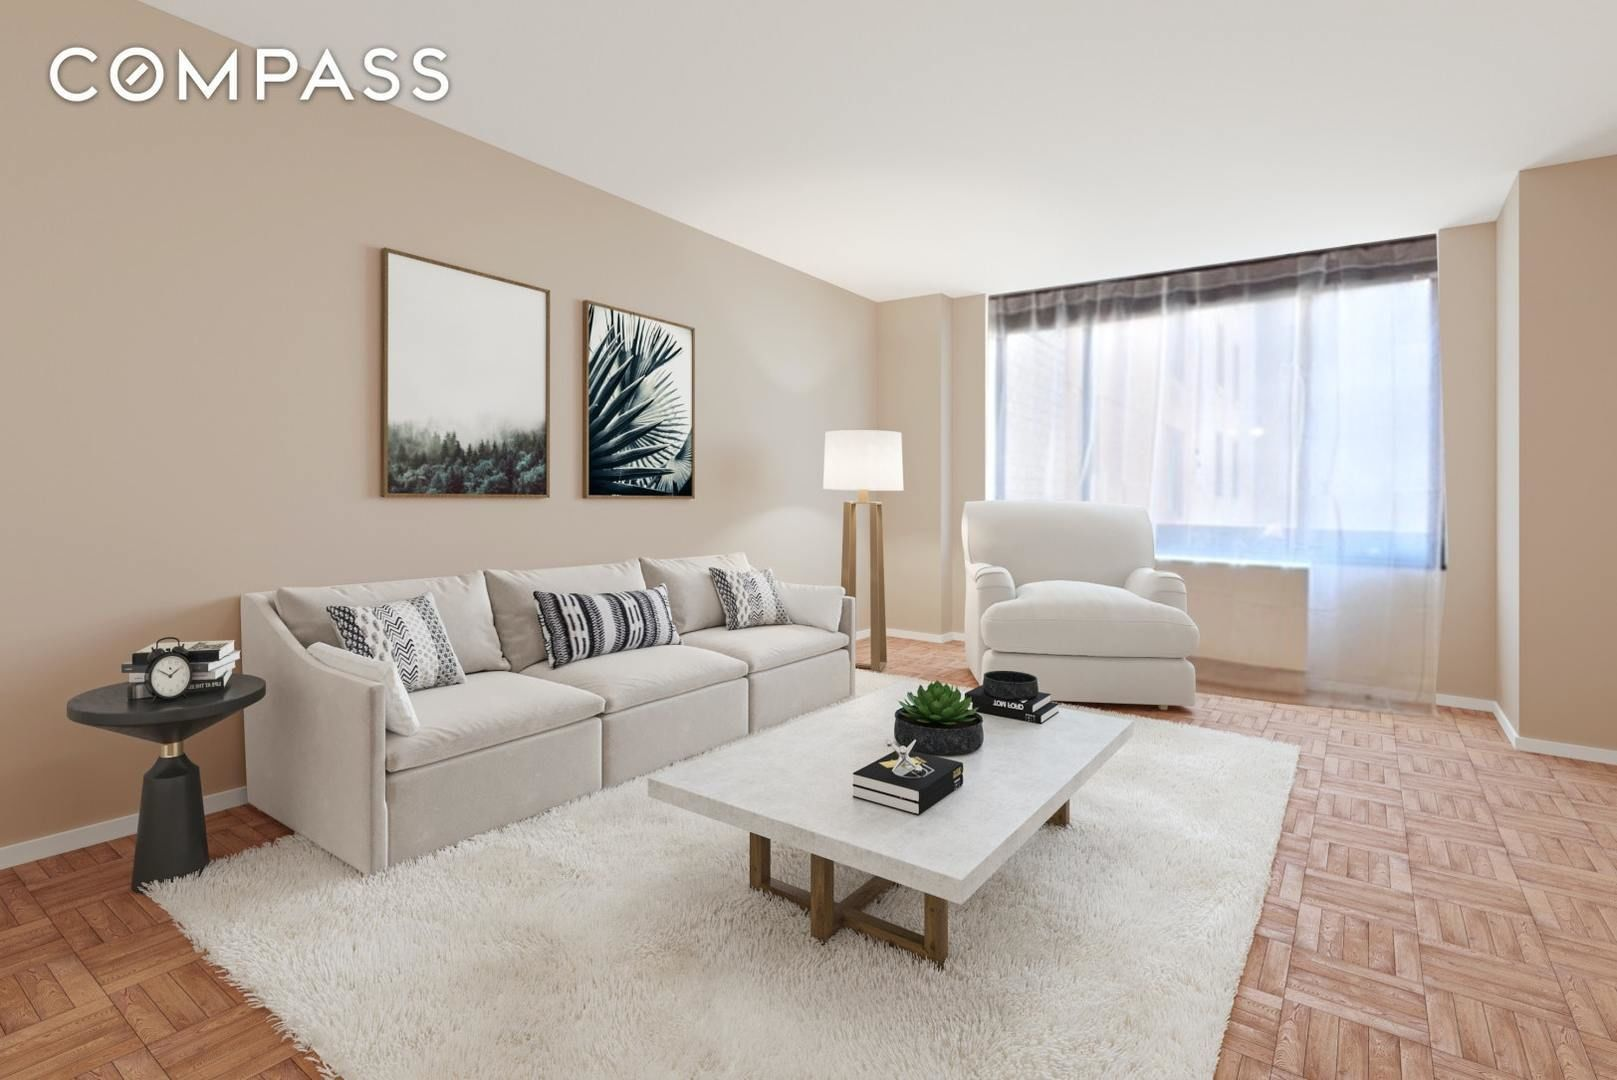 Apartment for sale at 377 Rector Place, Apt 3-G